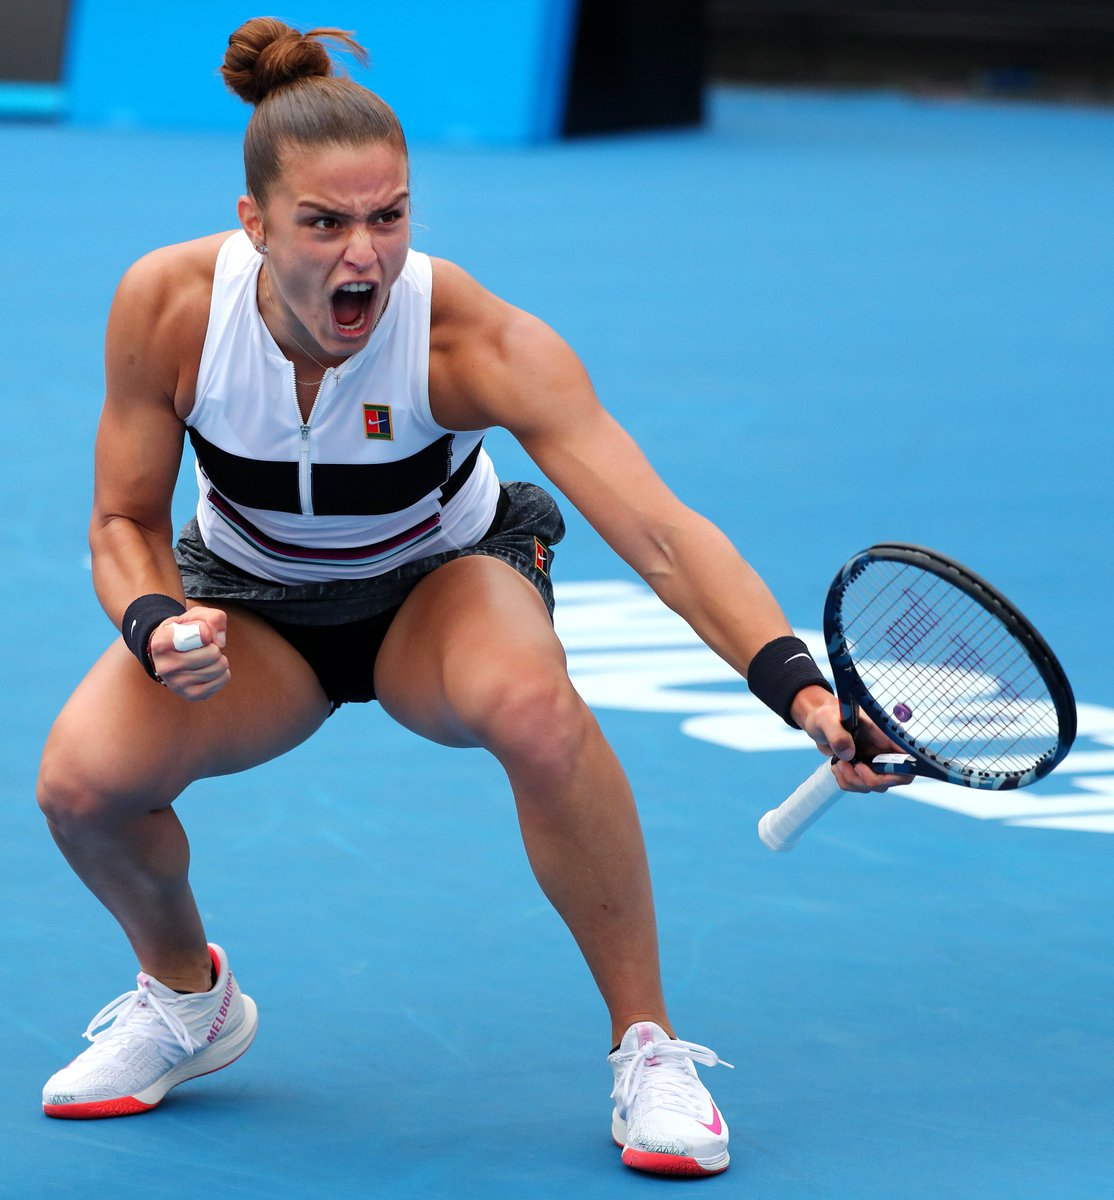 Look out, Australia! MSVC fan fave and fellow Spartan @mariasakkari is surging through the #AusOpen draw!